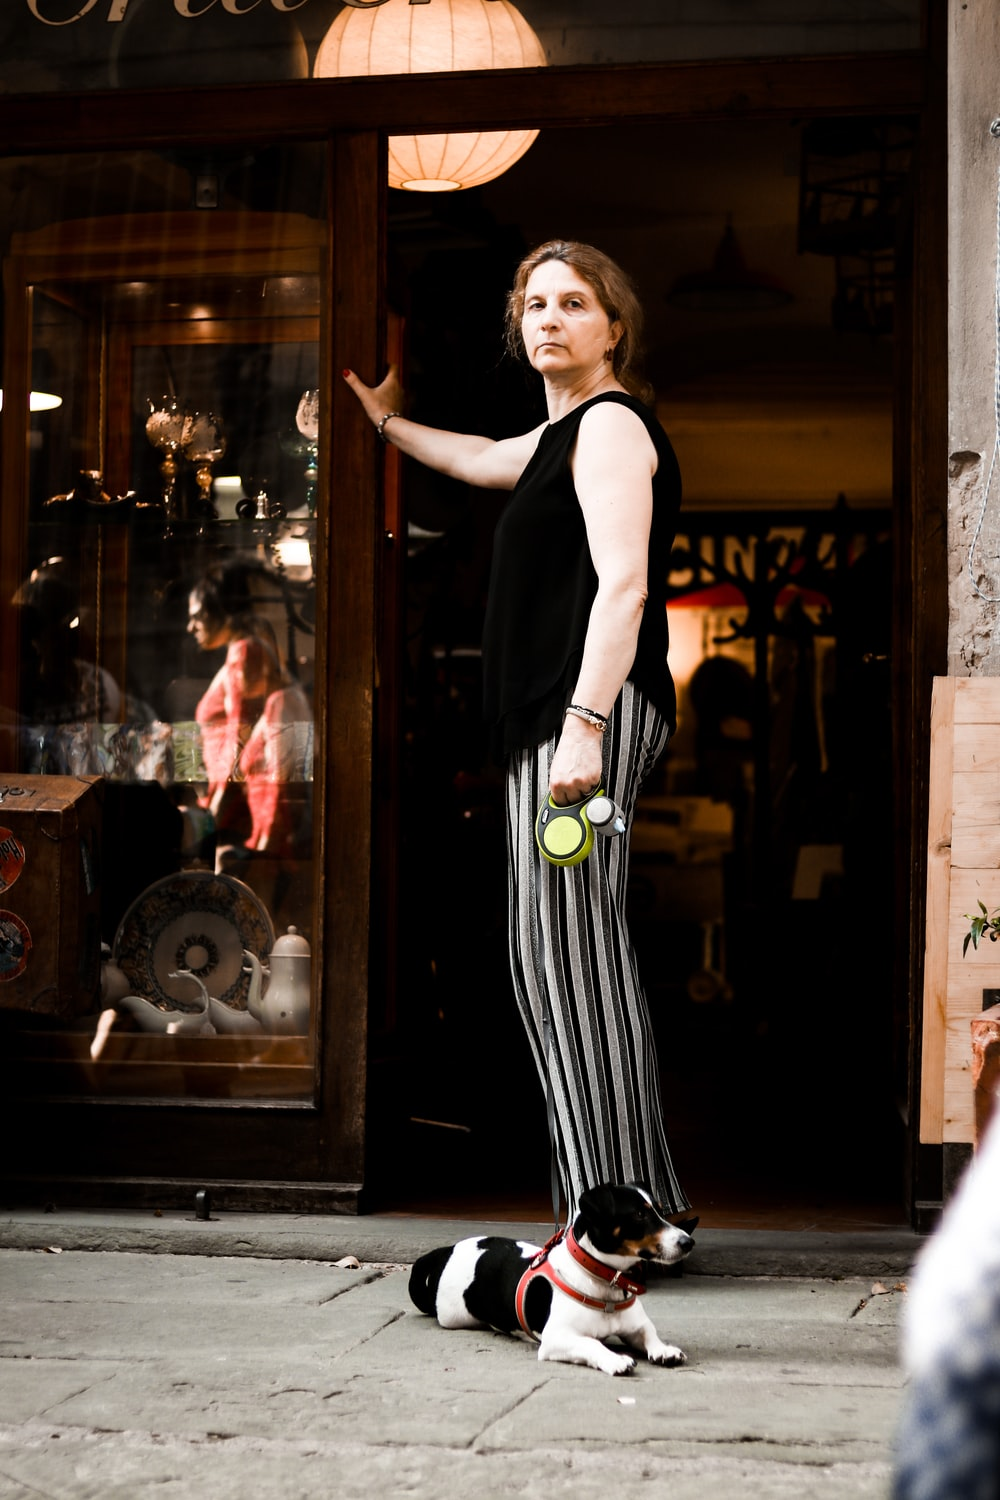 woman in black tank top and black and white striped pants standing beside glass door